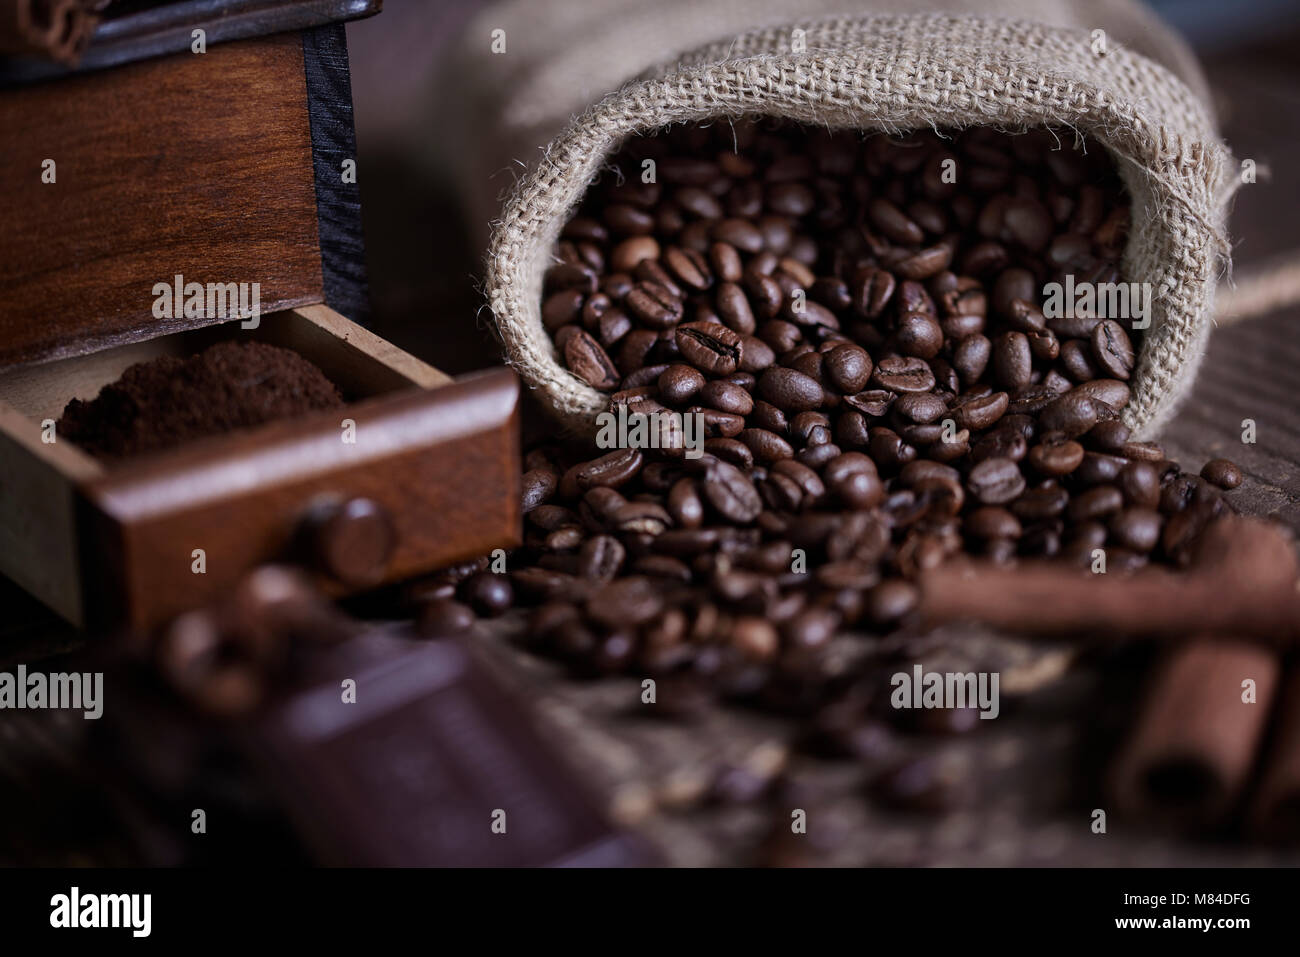 Sack of coffee bean and coffee mill - Stock Image